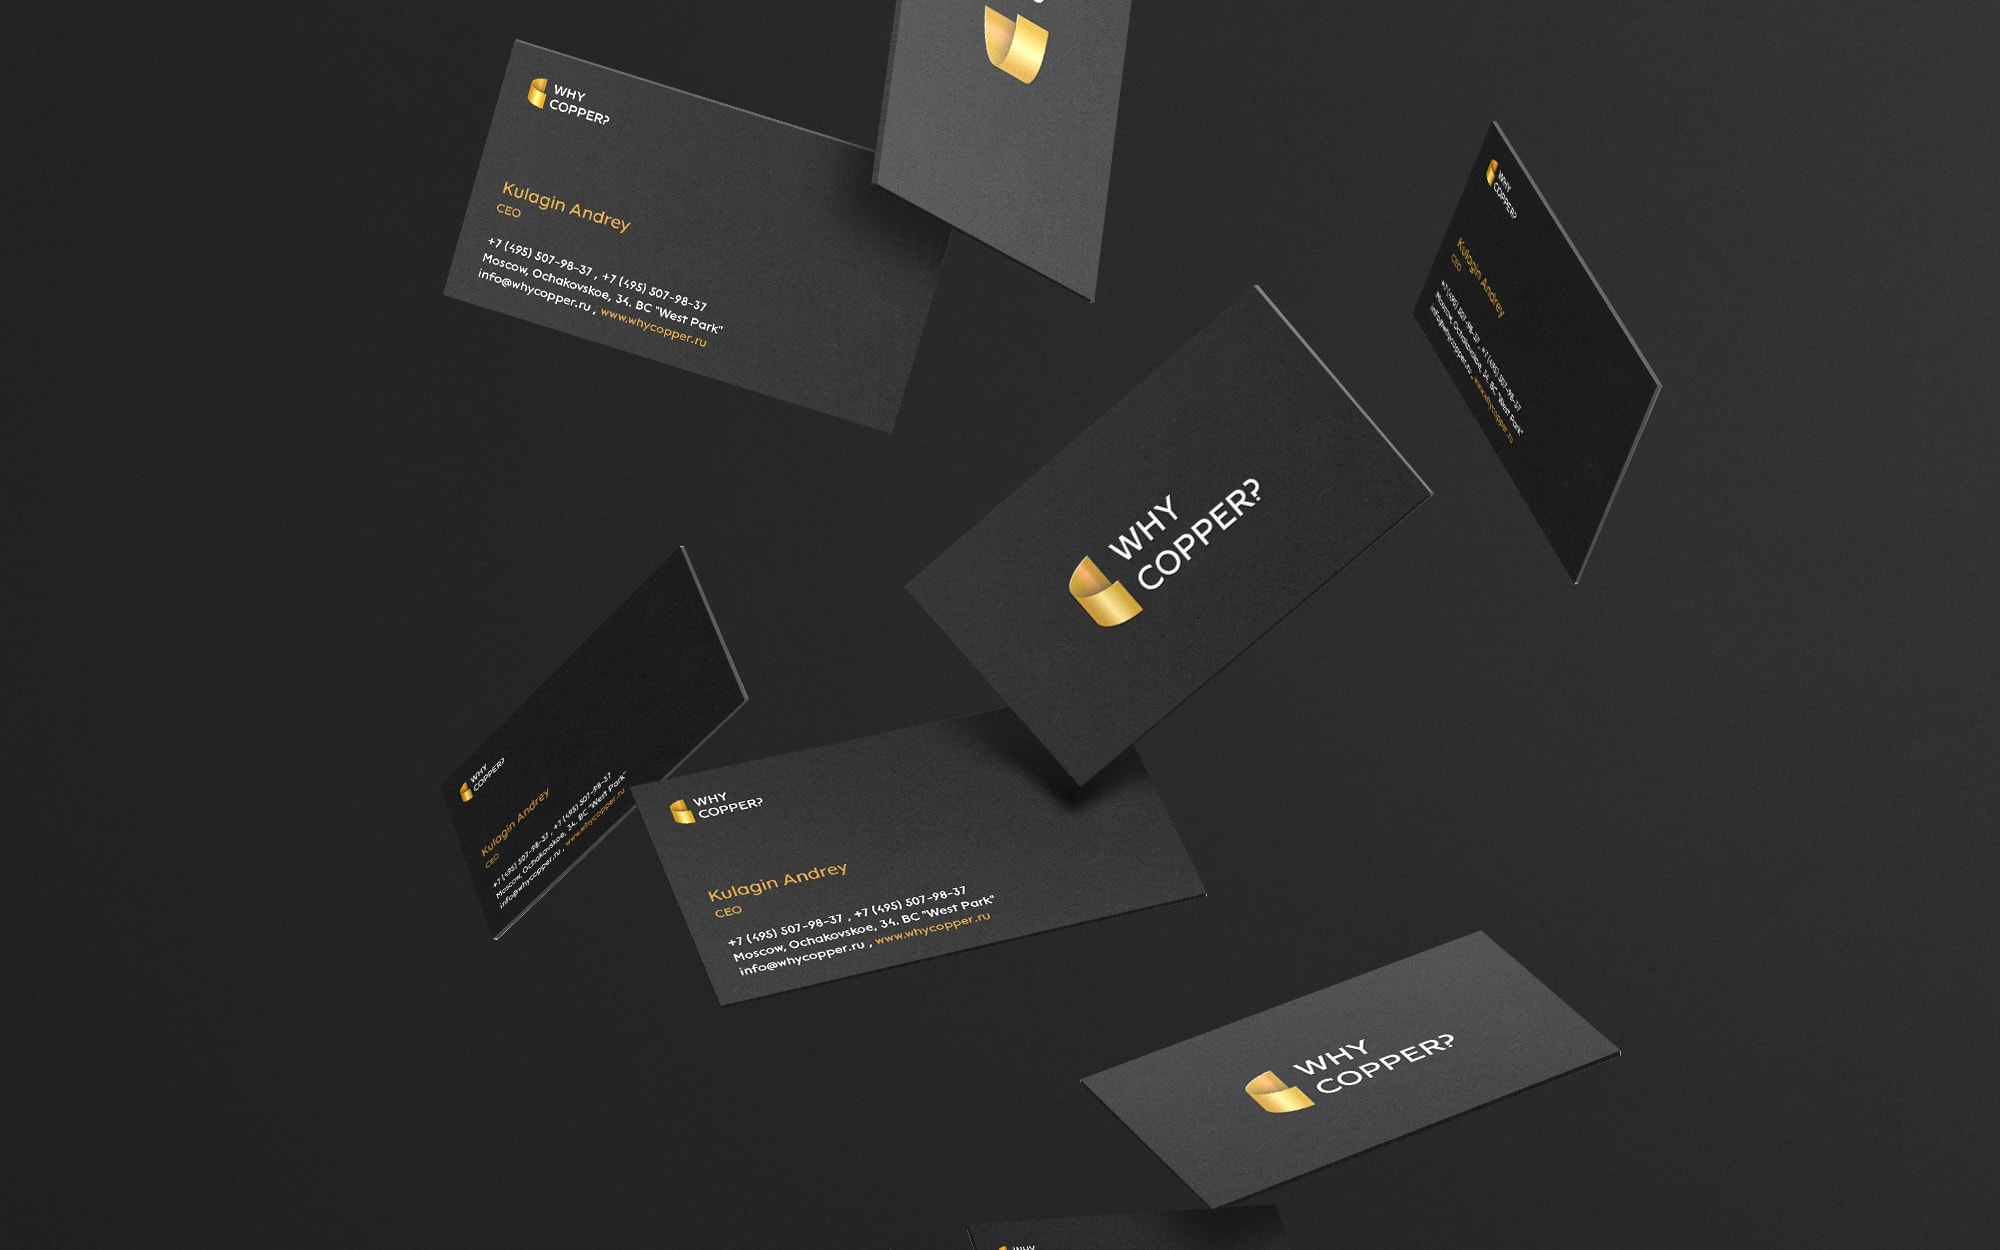 Production company branding and business cards